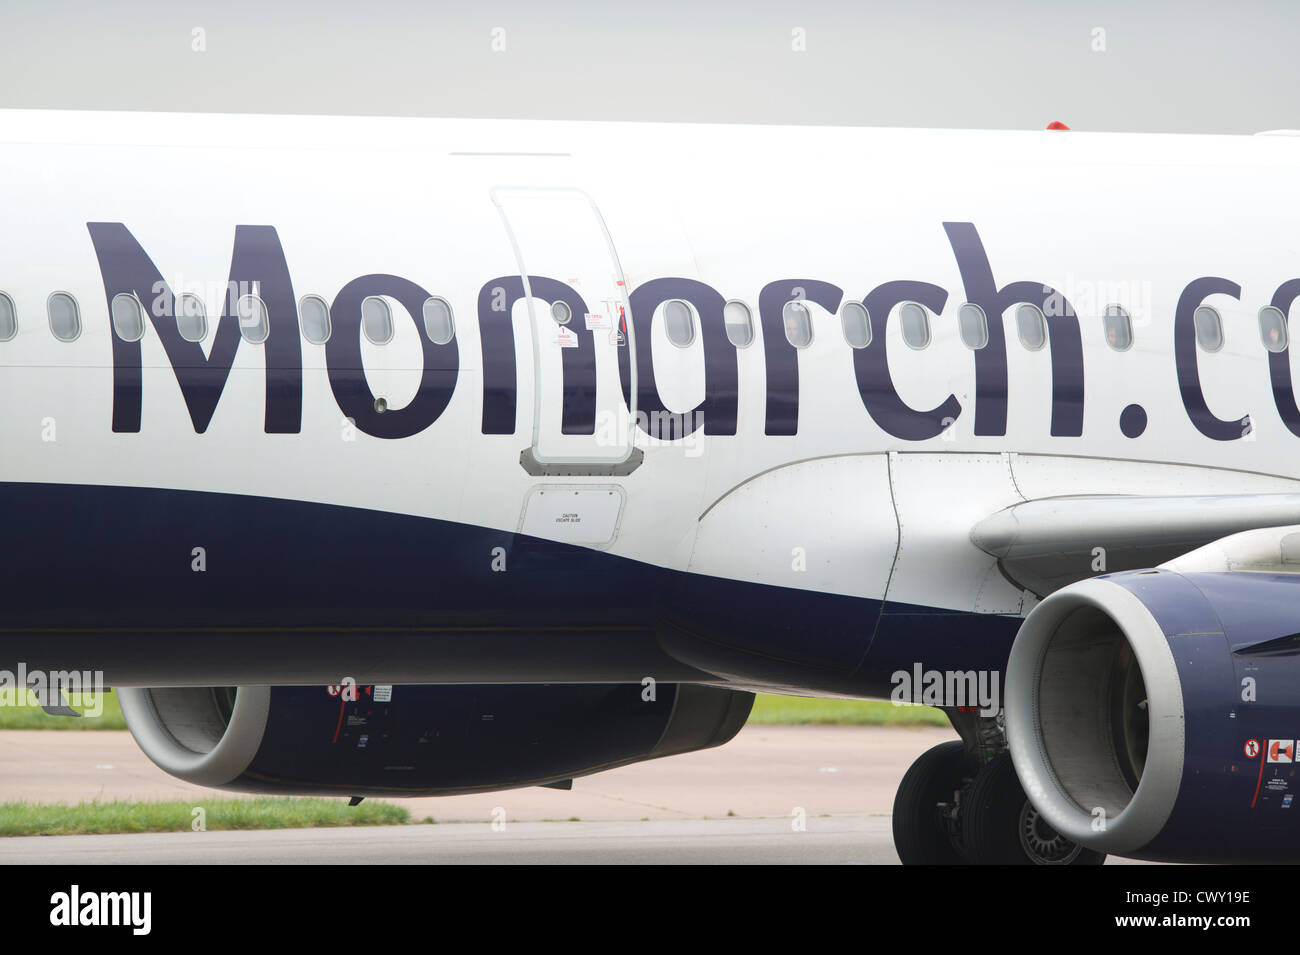 A close up of the Monarch Airlines logo on the fuselage of a passenger aircraft (Editorial use only) - Stock Image